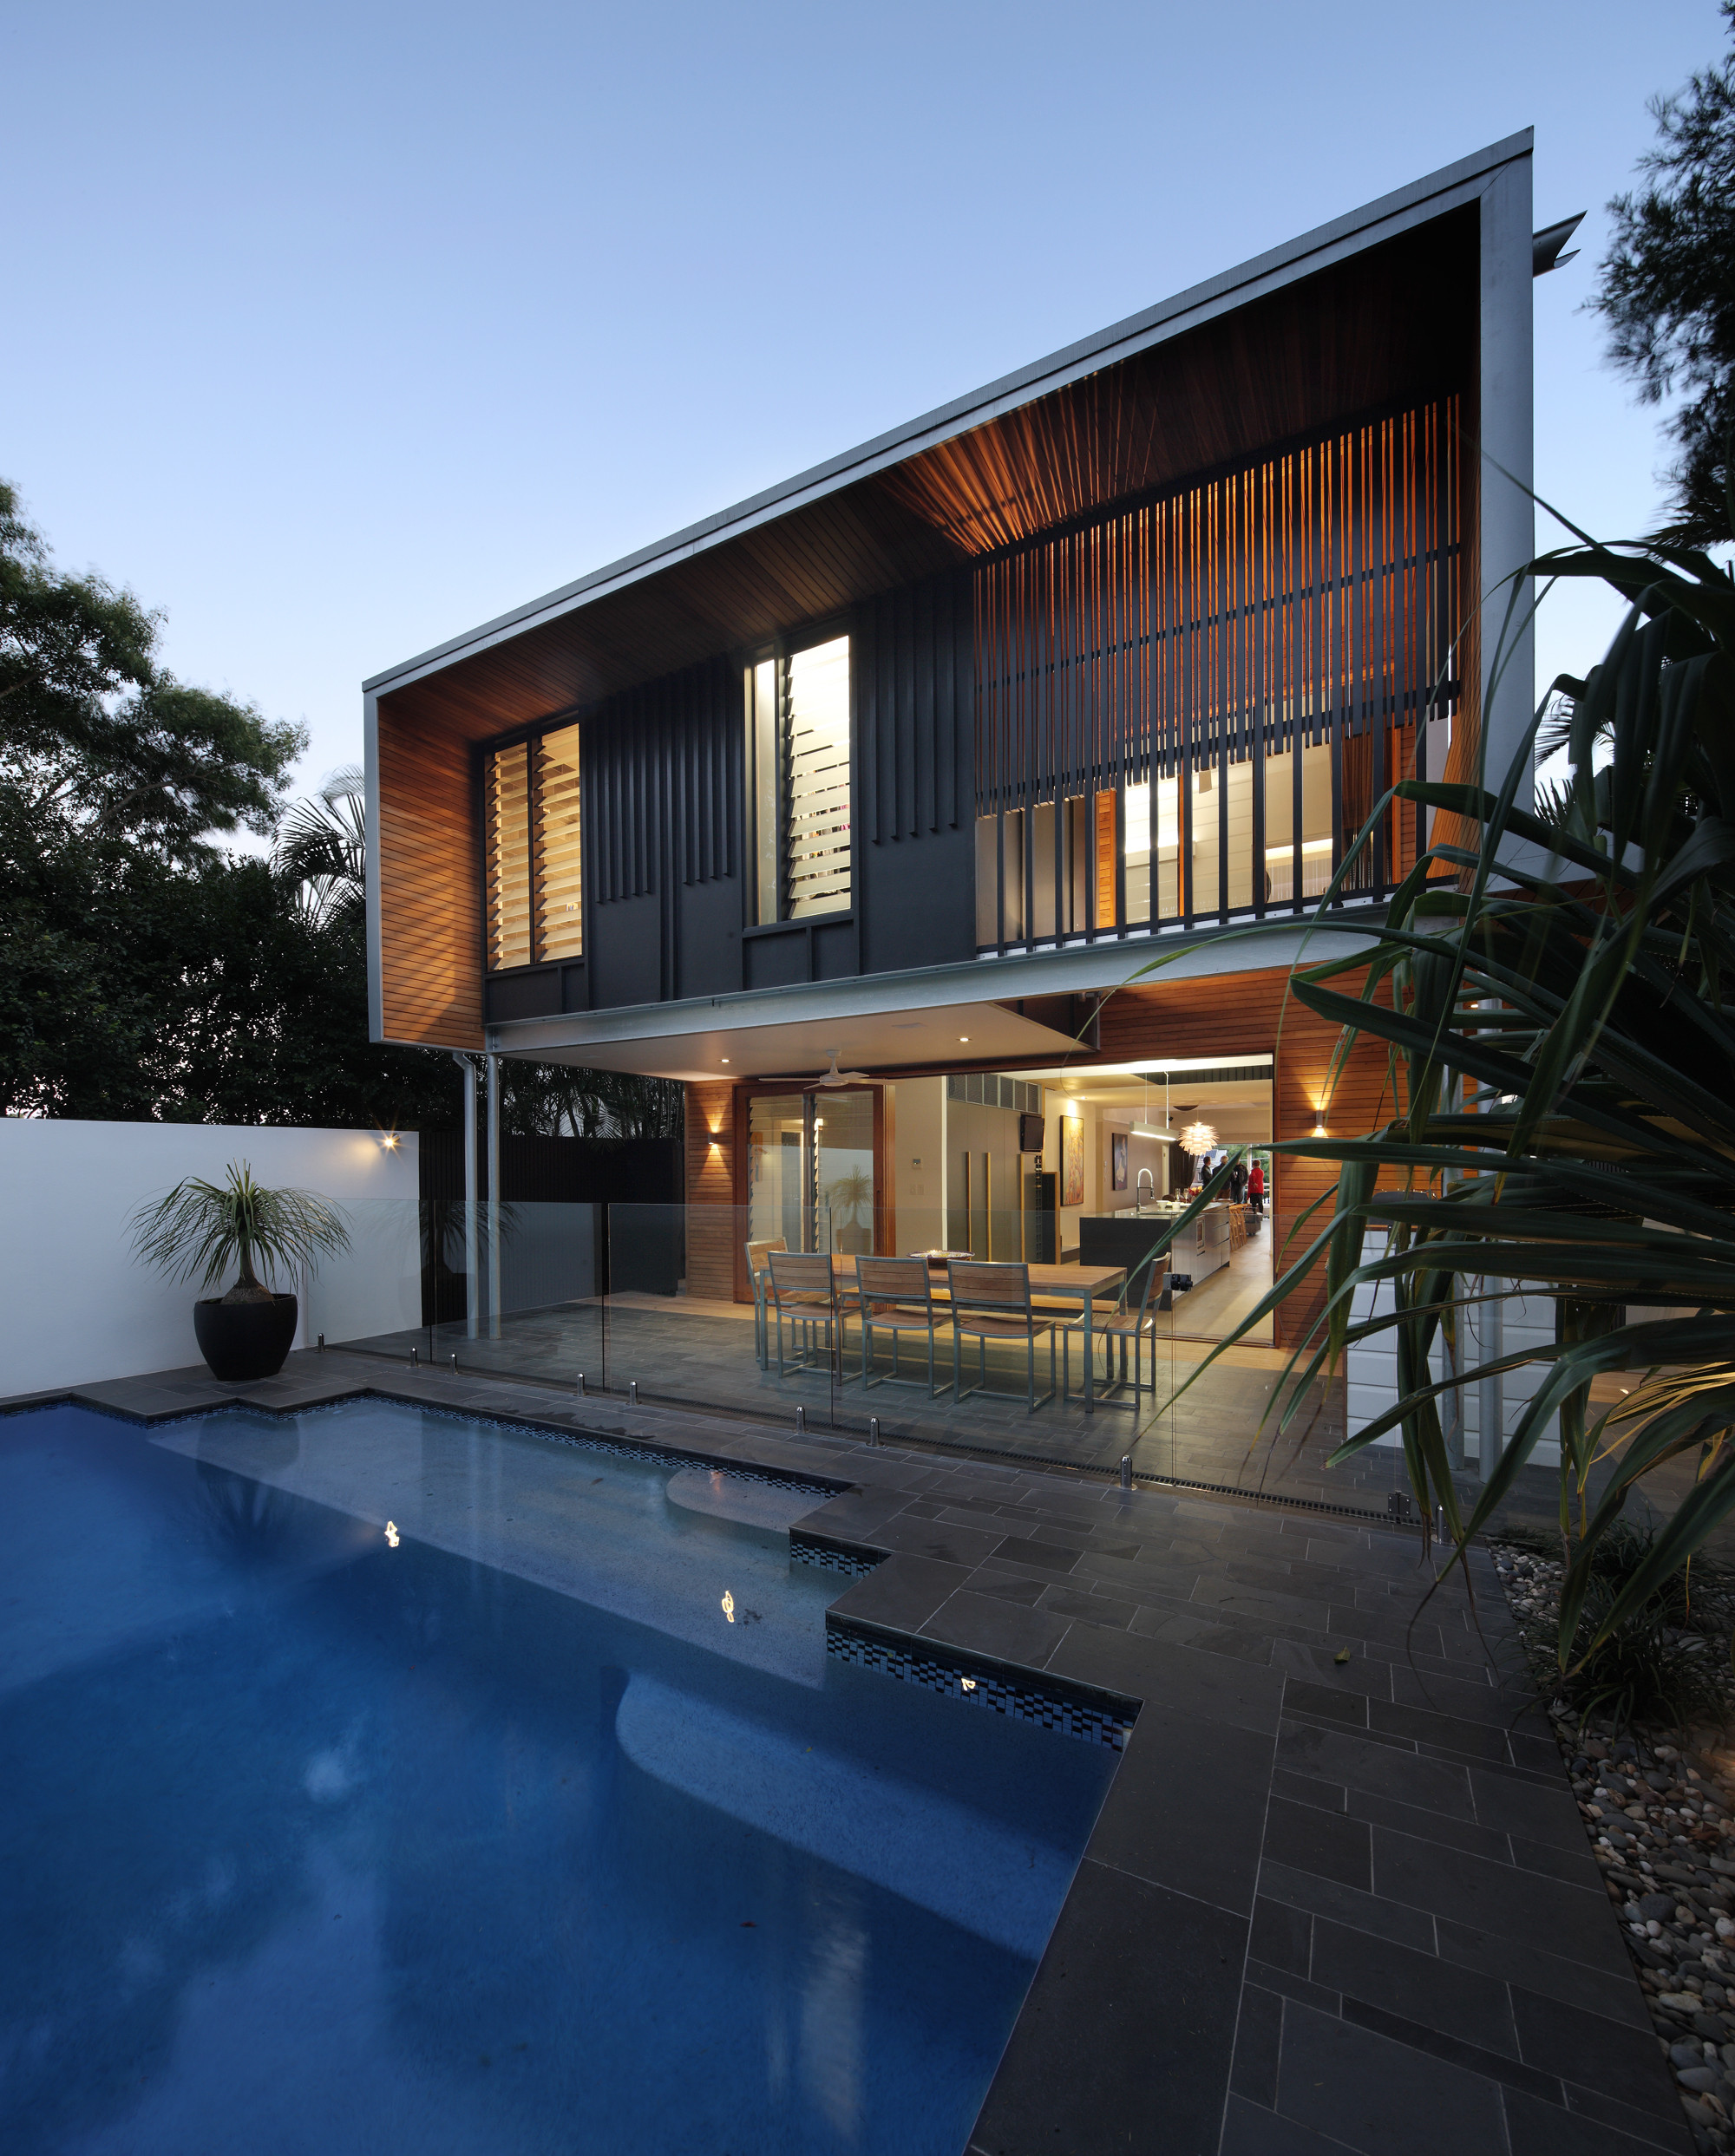 Beeston / Shaun Lockyer rchitects rchDaily - ^